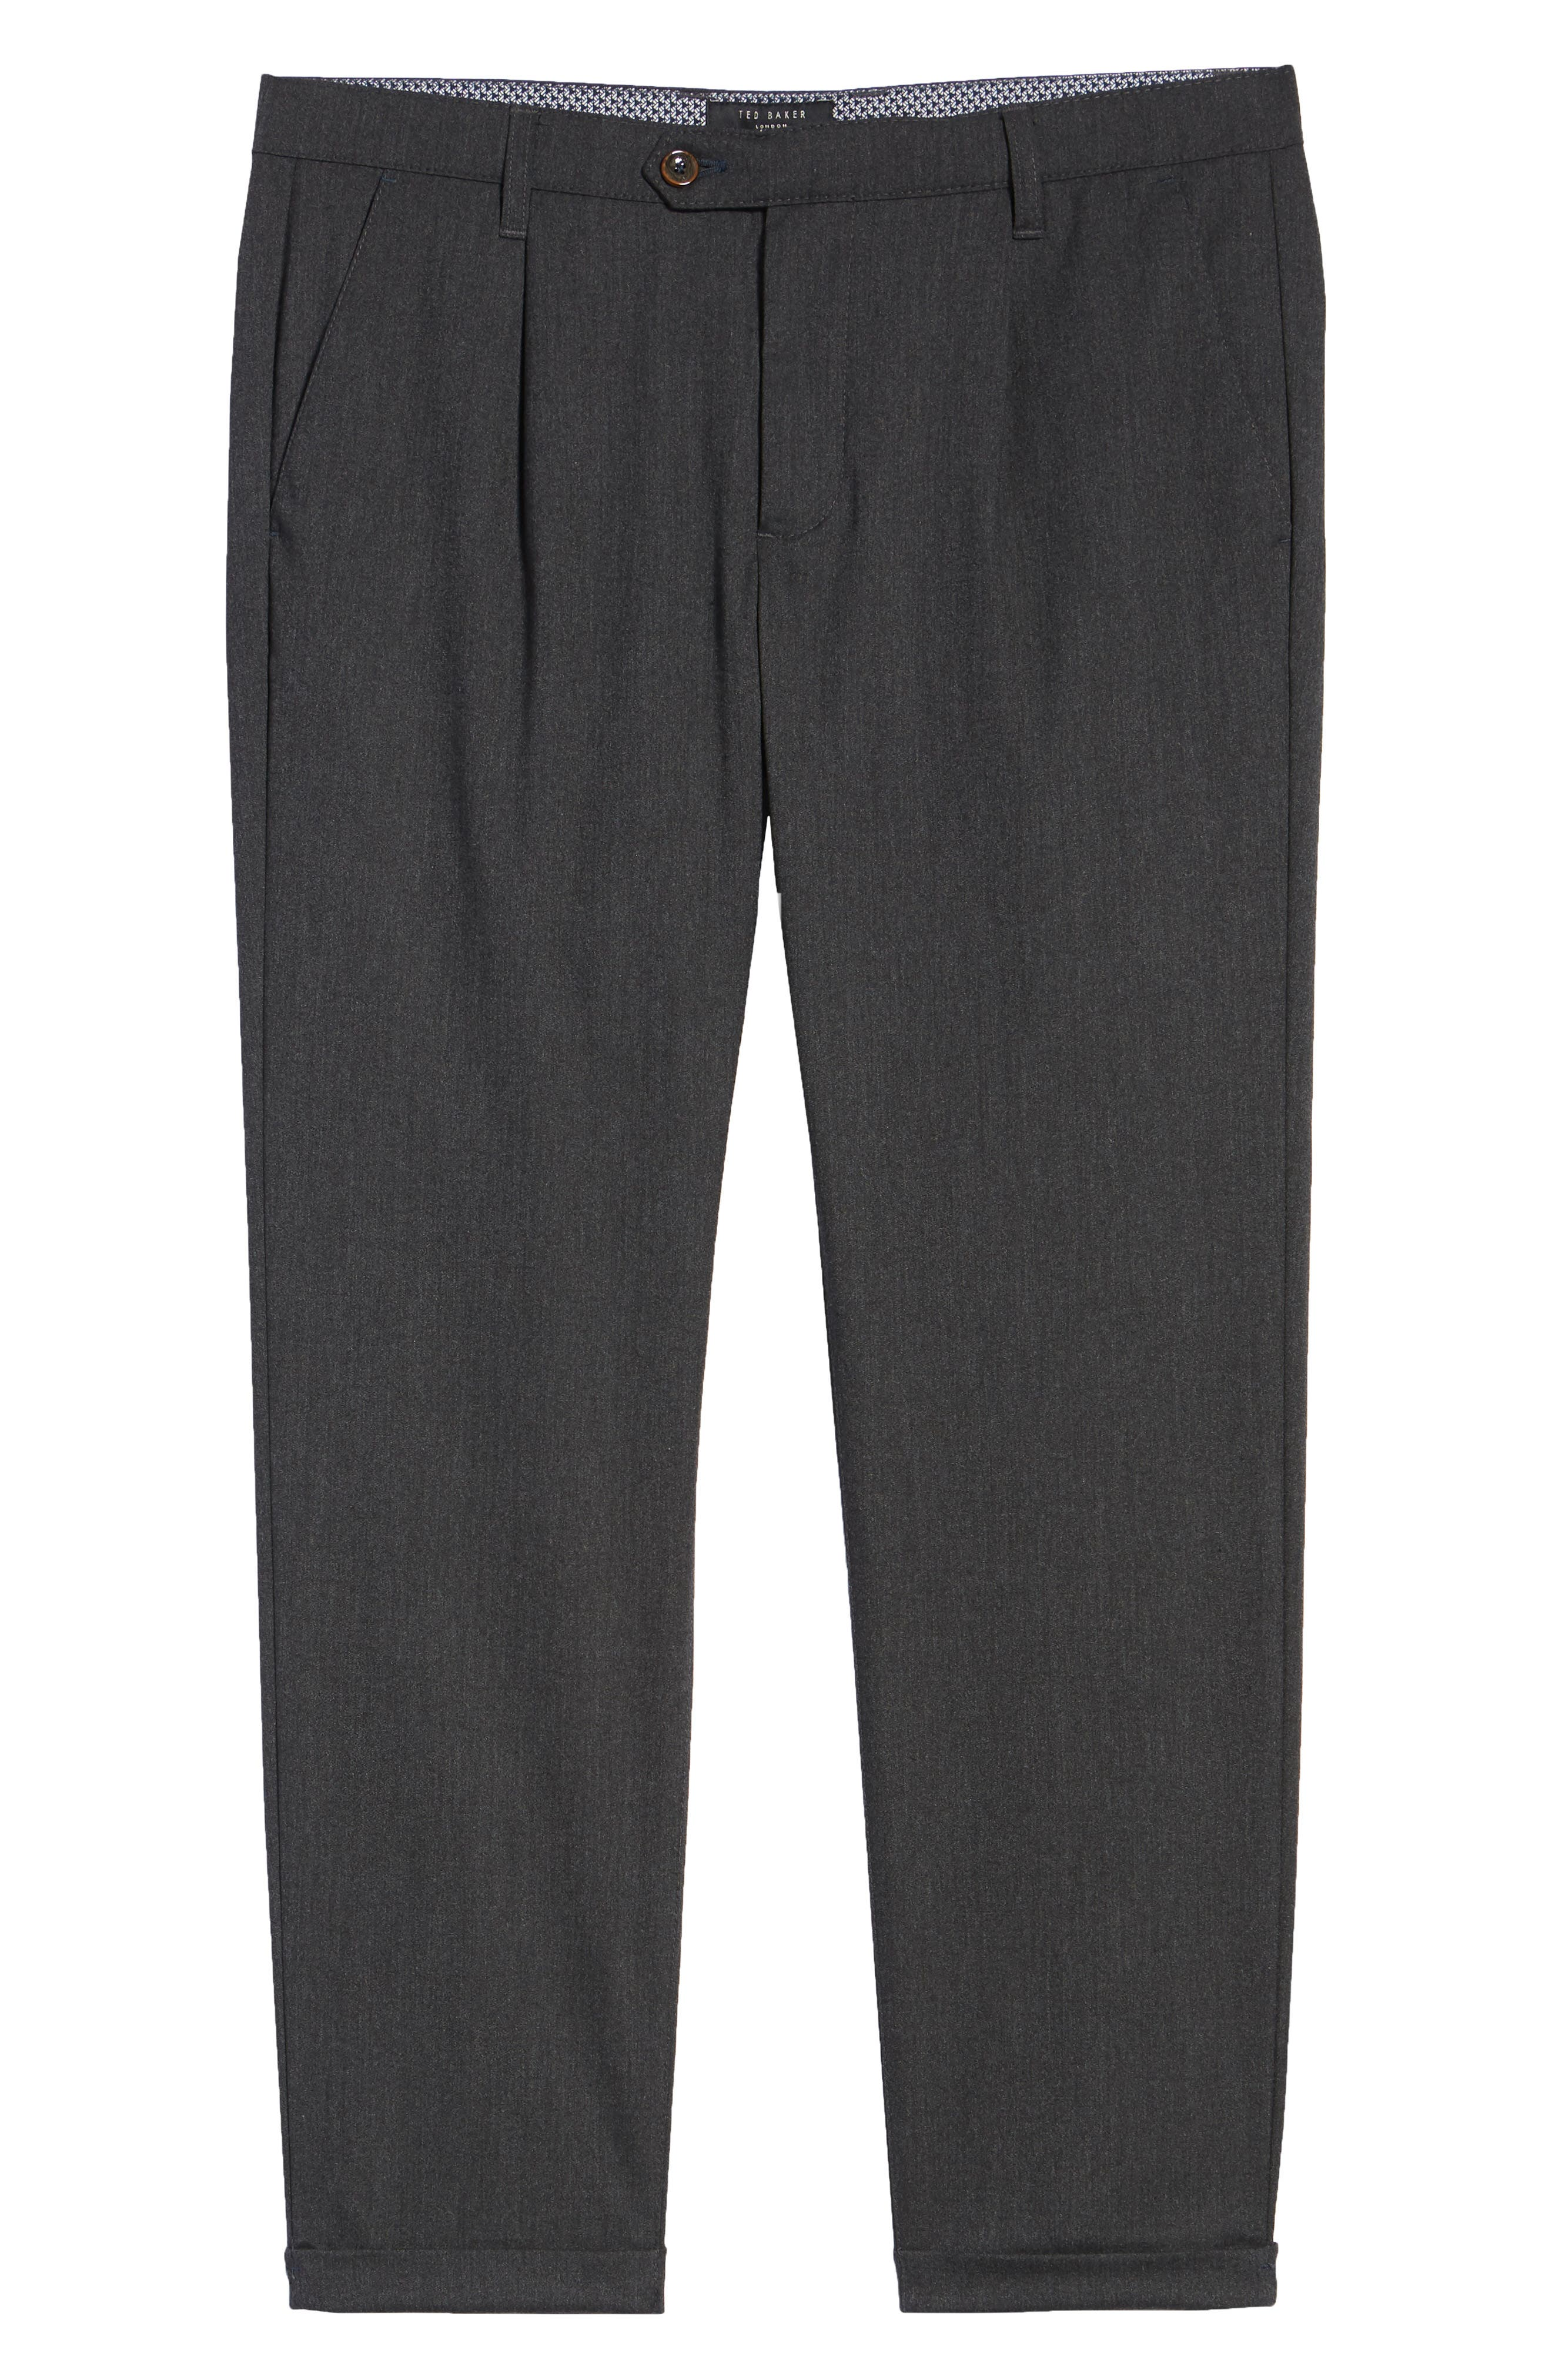 Champi Pleated Cropped Pants,                             Alternate thumbnail 6, color,                             001